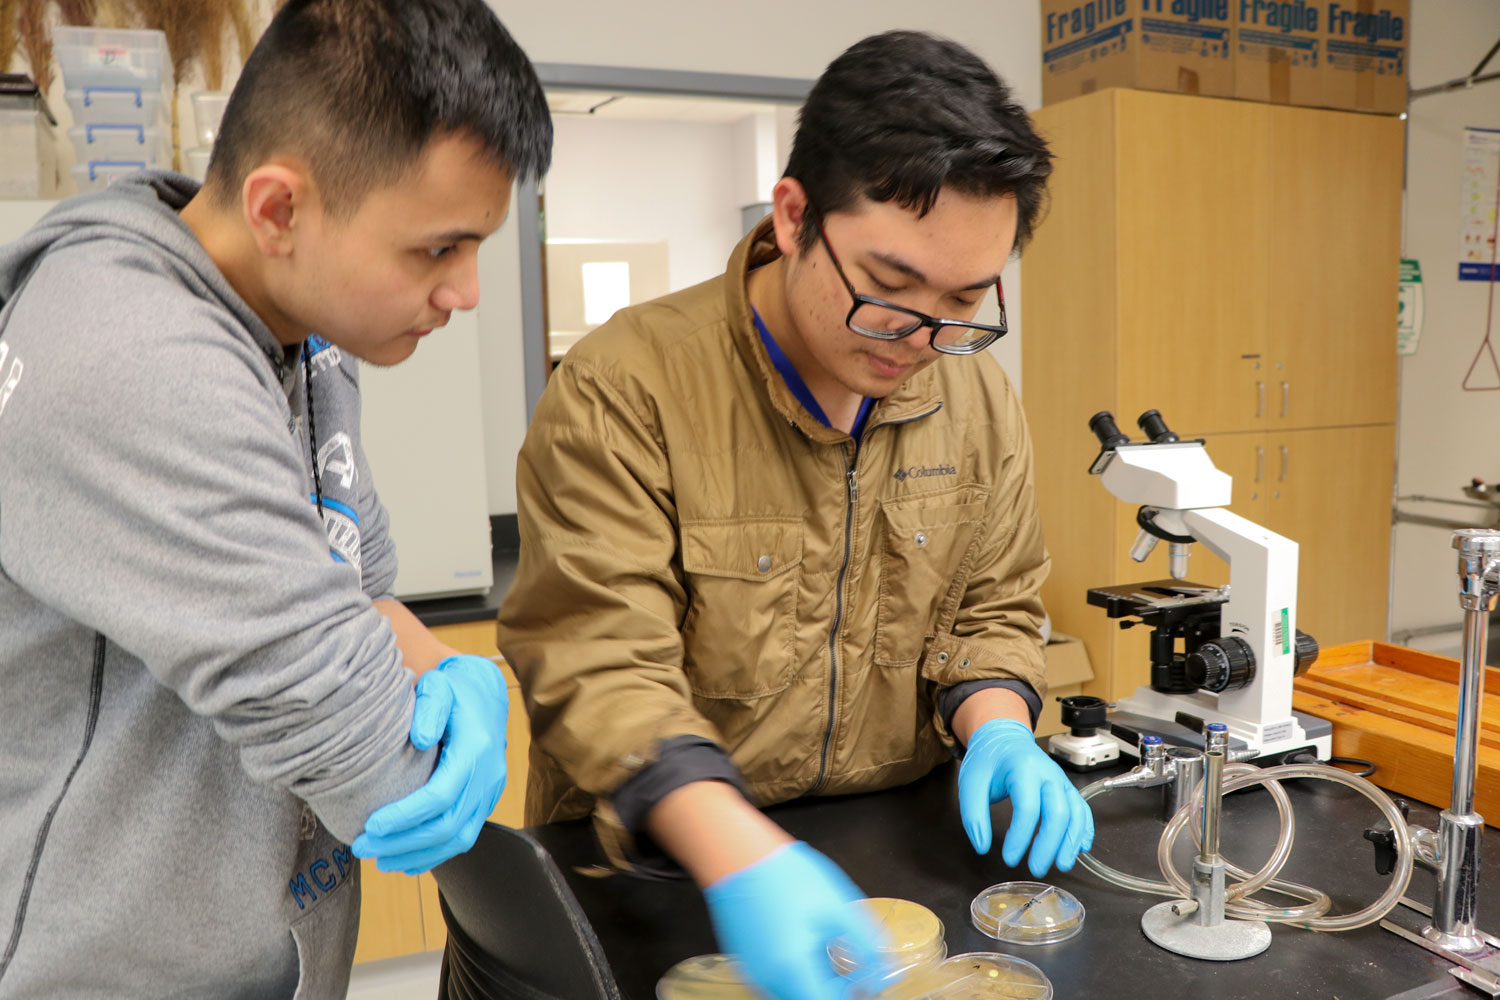 Sophomore pre-pharmacy majors, Huy Cam and Karlo Flores take a look at the project they have been working on. Cam and Flores test a bacteria and an anti-biotic that theyve produced in their lab together to see whether or not the bacteria is resistant to the anti-biotic.